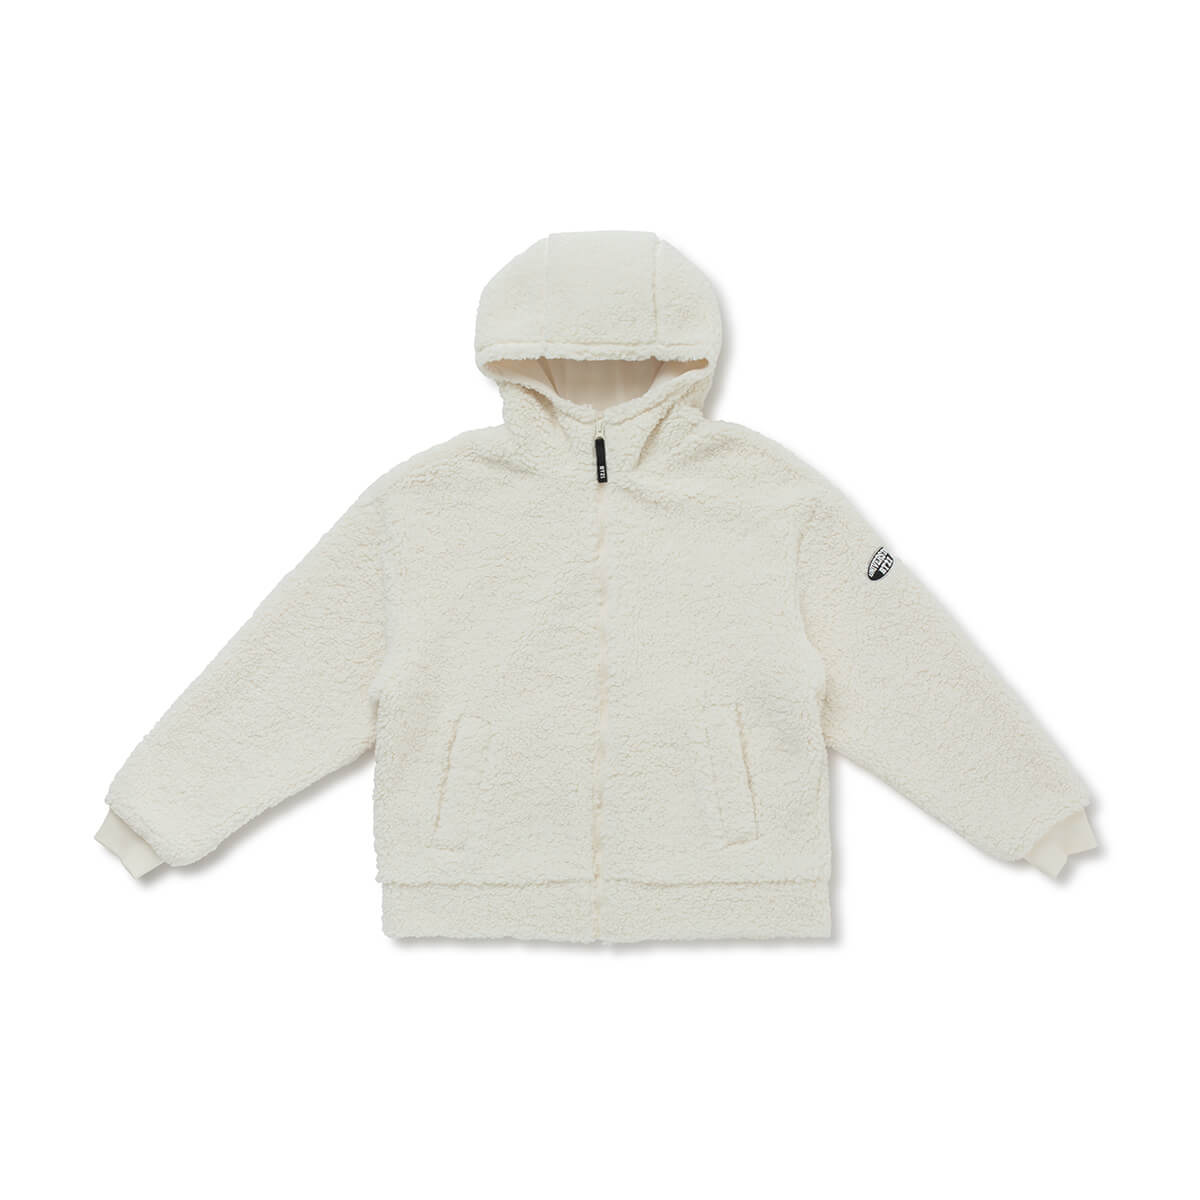 BT21 Universtar Fleece Teddy Zip Up Hoodie Ivory (w/ free gift)